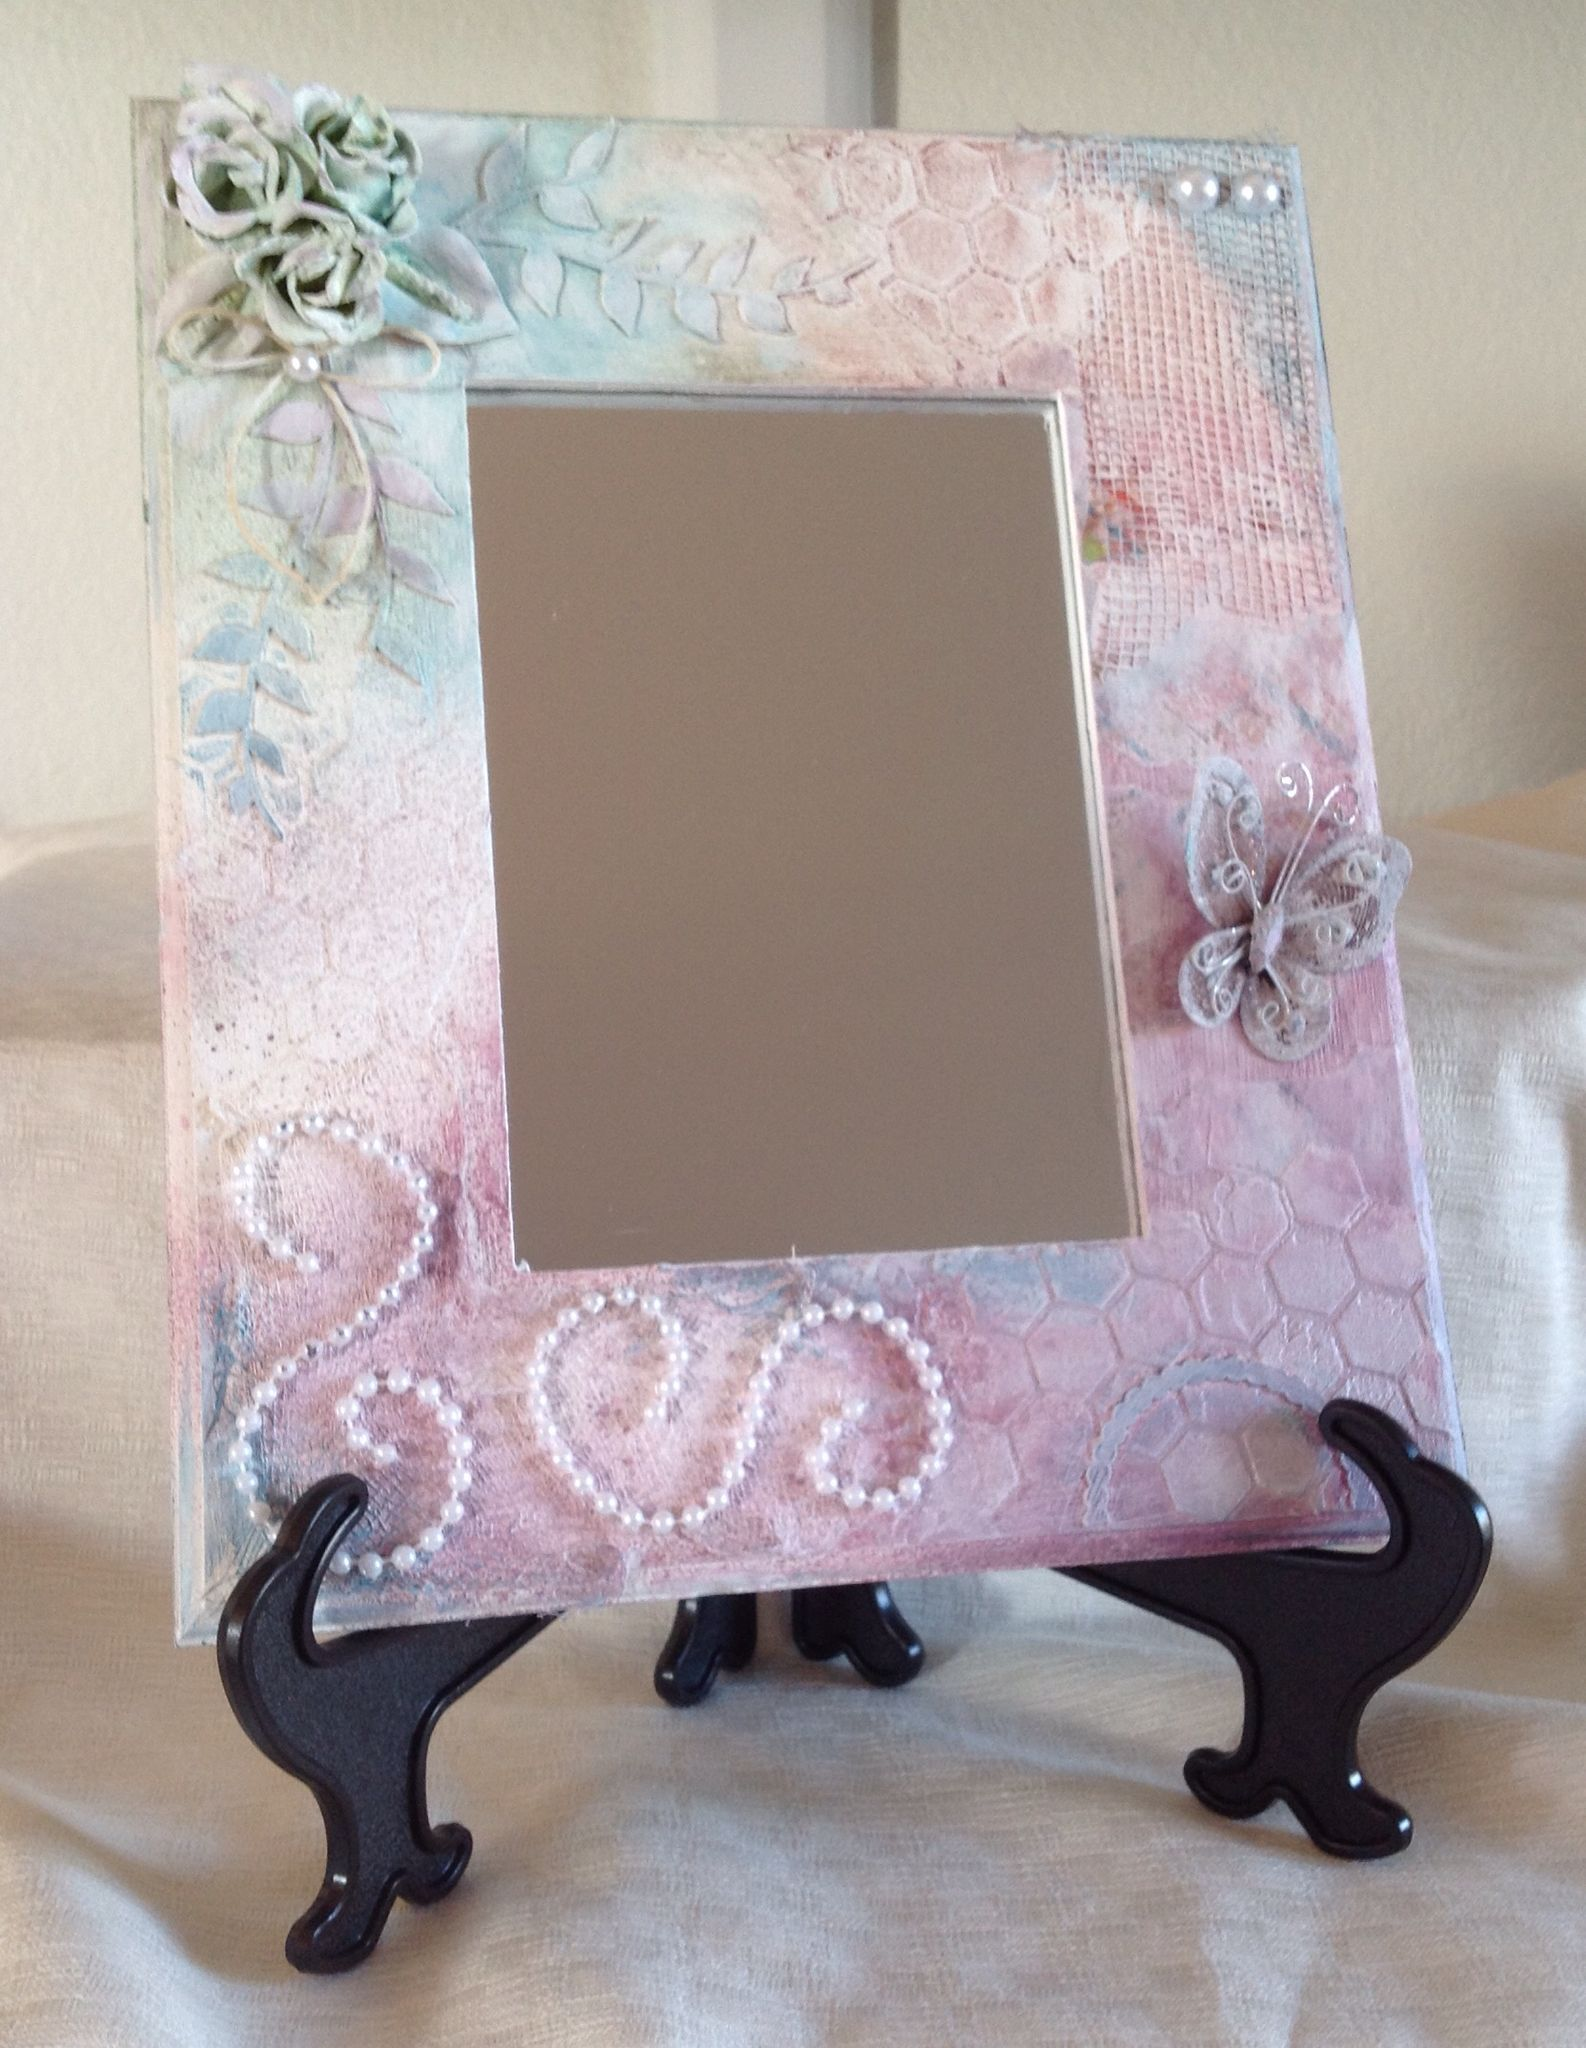 Vintage style mirror with easel.